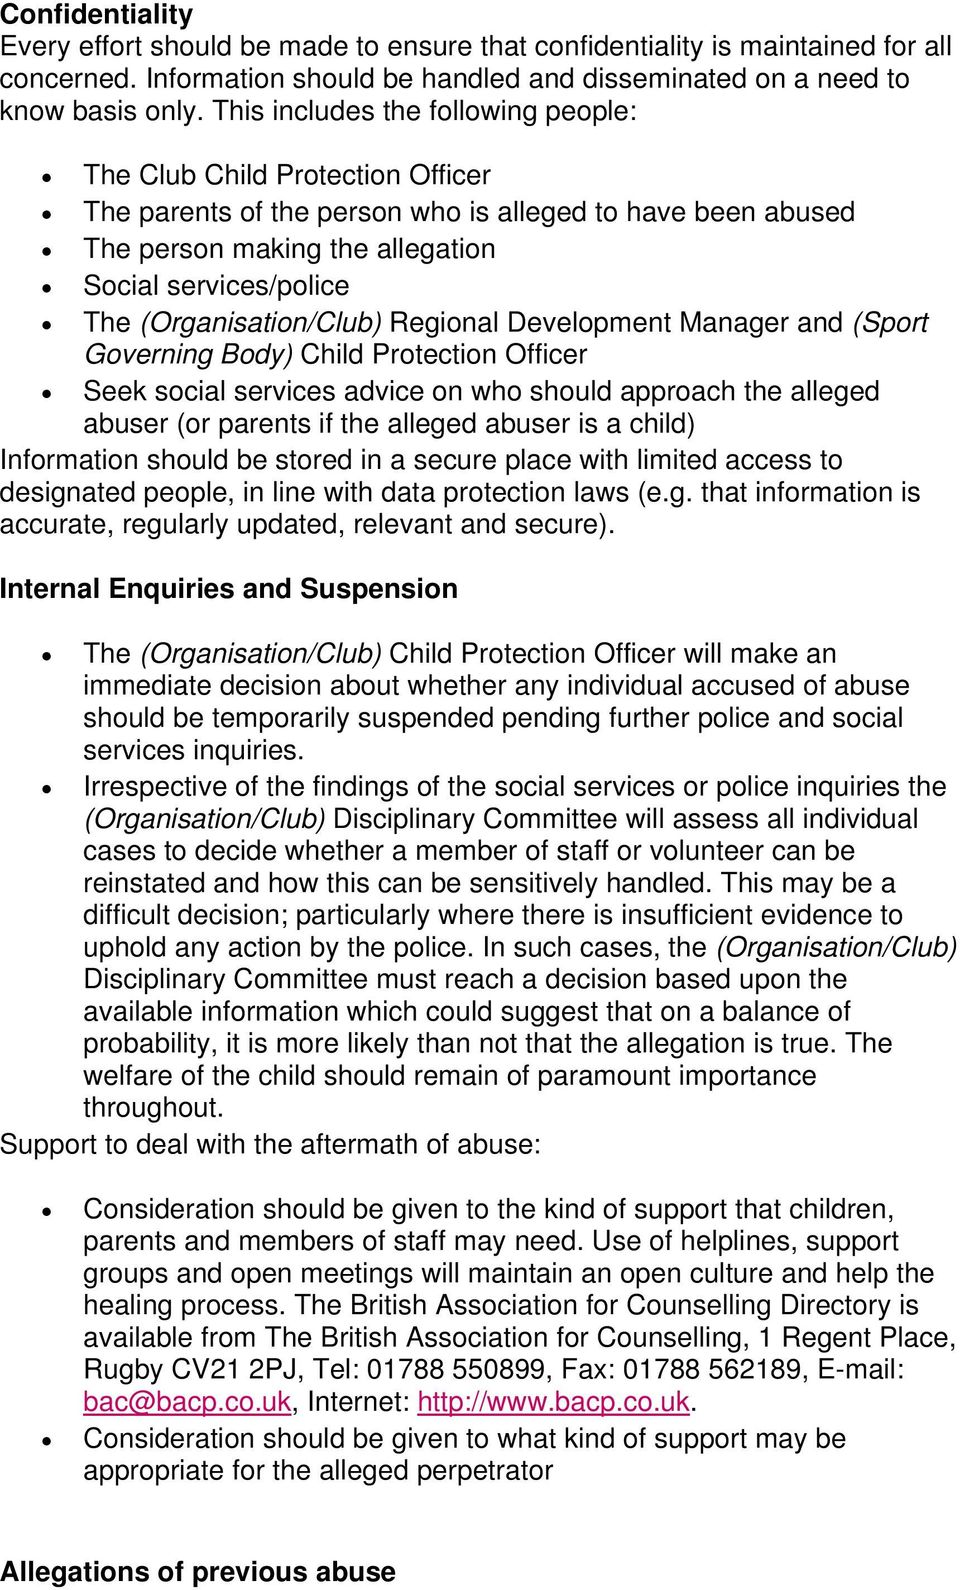 (Organisation/Club) Regional Development Manager and (Sport Governing Body) Child Protection Officer Seek social services advice on who should approach the alleged abuser (or parents if the alleged